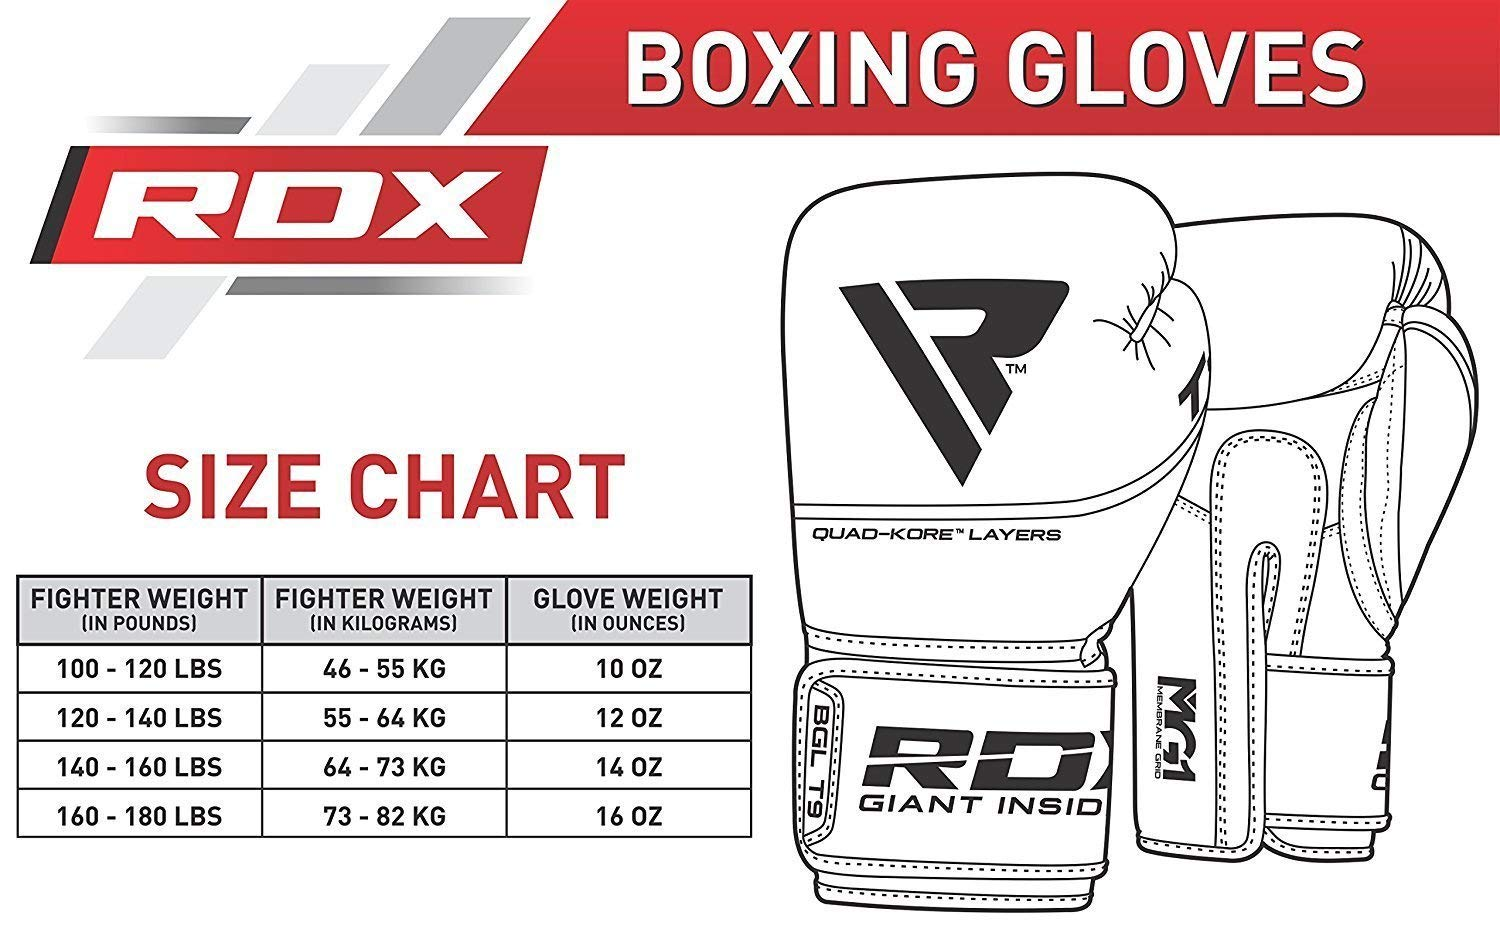 Genuine Cowhide Leather Infused Gel Gloves for Sparring RDX Boxing Gloves for Training Muay Thai Fighting Bag Mitts Kickboxing and Heavy Punching Bag Focus Mitts